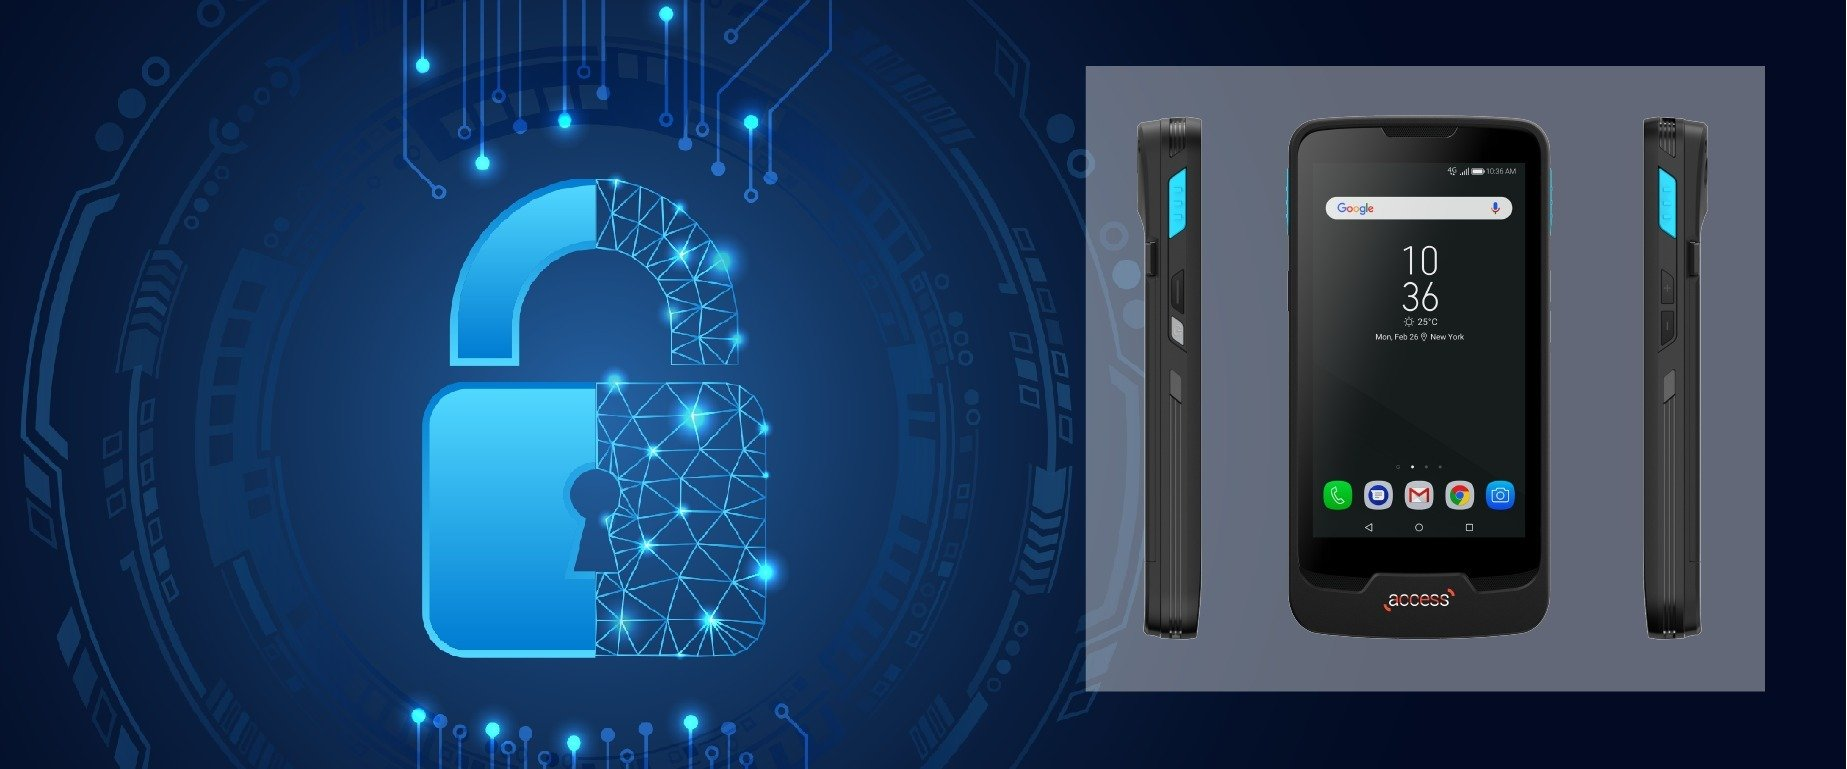 The latest in Coppernic range: Access, an ultra-secure terminal.